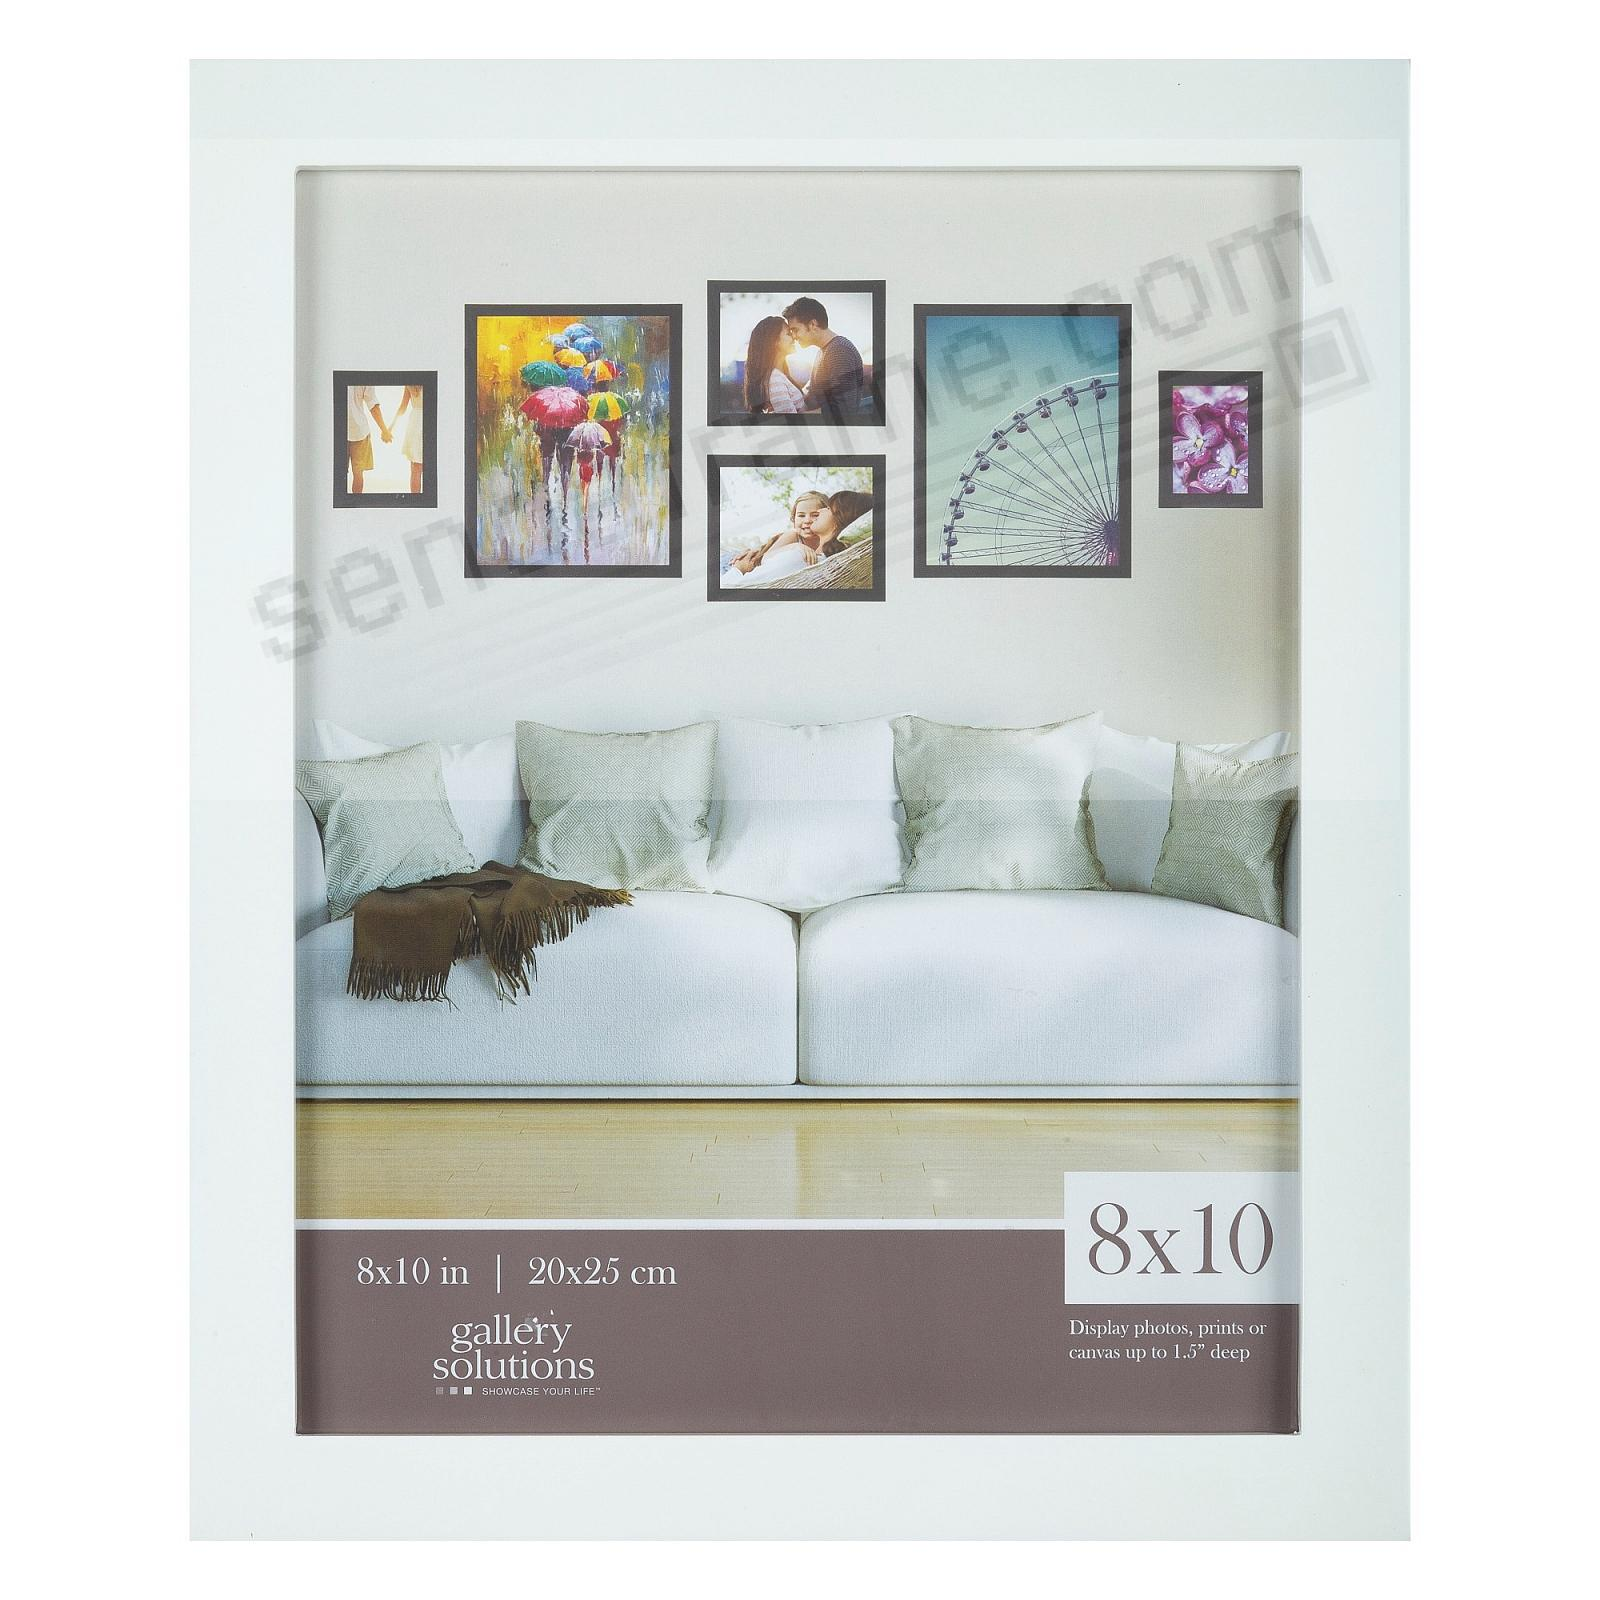 WHITE GALLERY 8x10 frame by Gallery Solutions®